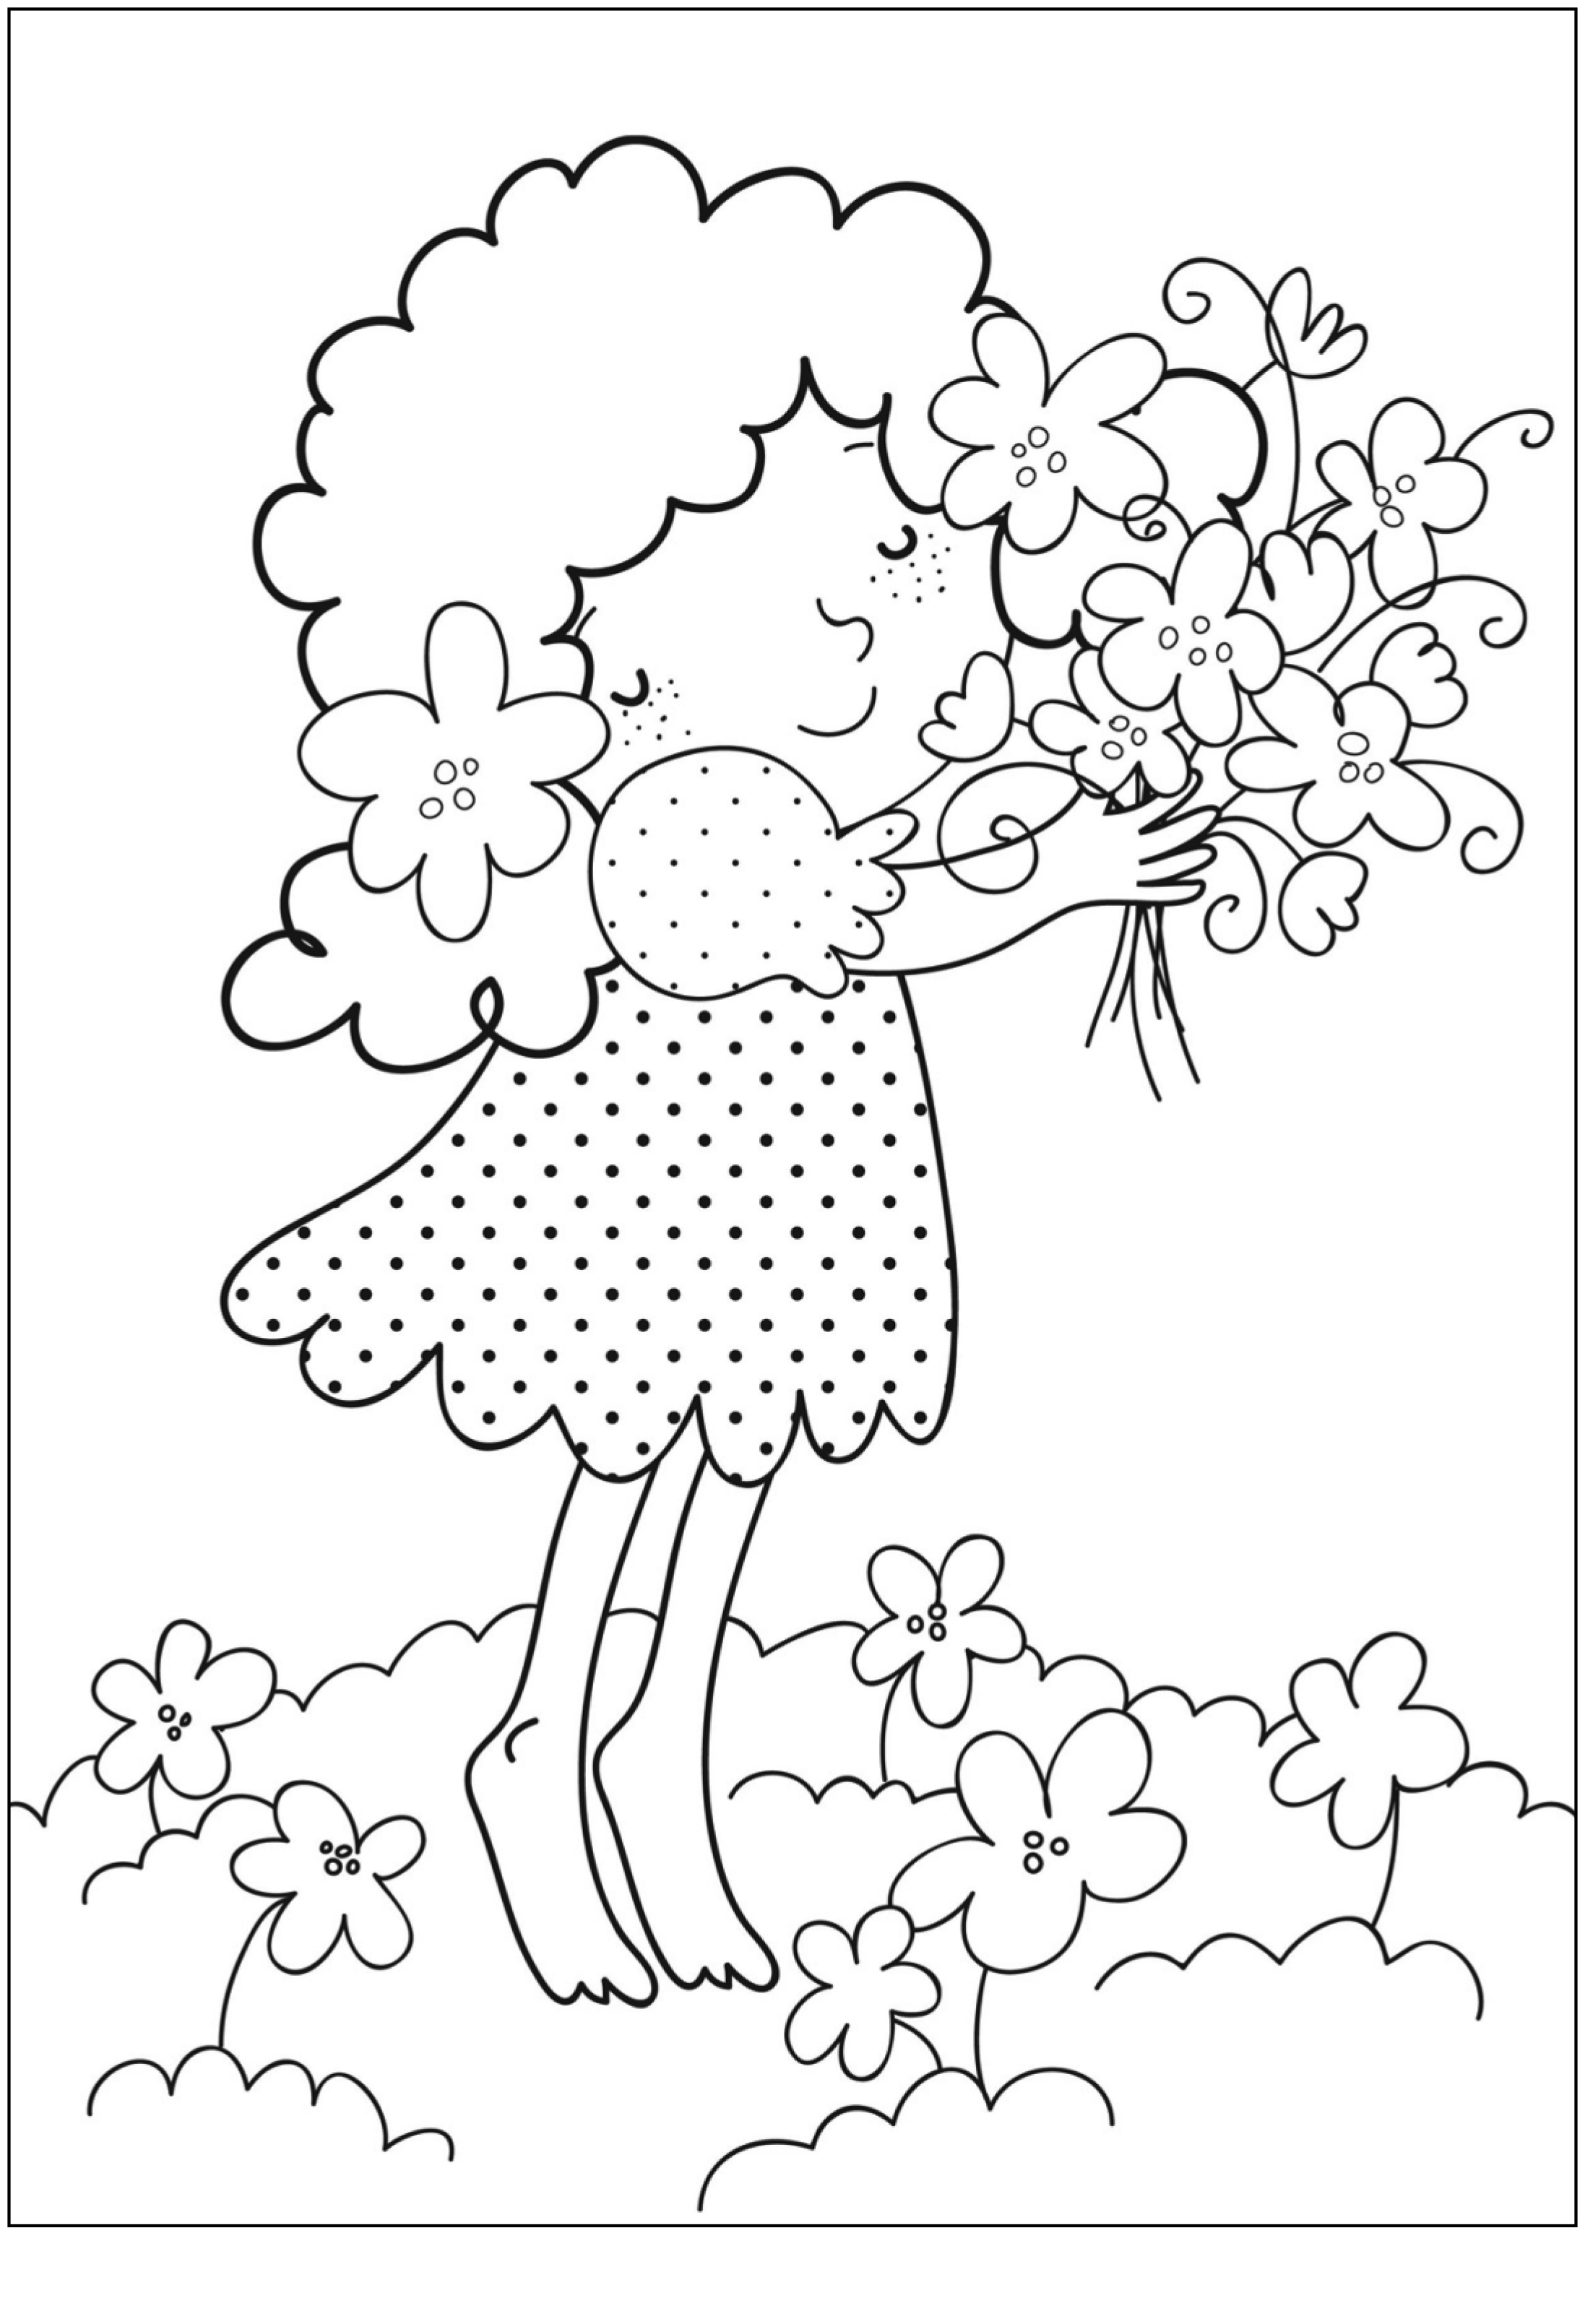 childrens coloring pages flowers childrens coloring pages flowers flowers pages childrens coloring